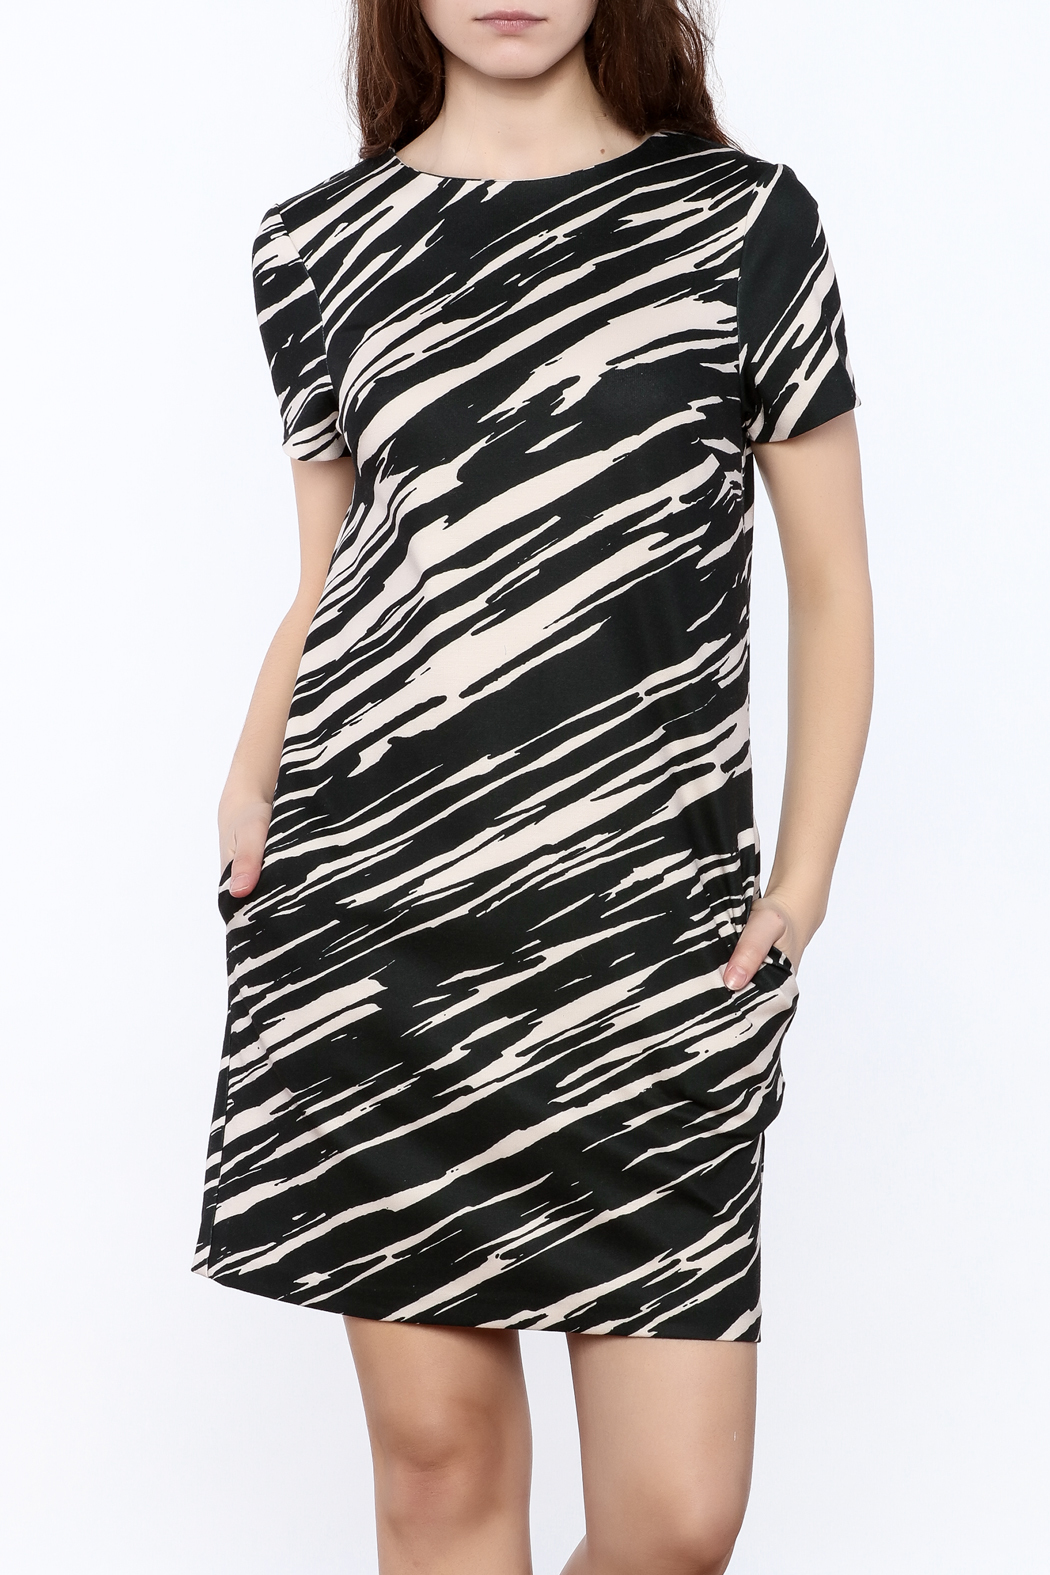 Trina by Trina Turk Zebra Mini Dress - Main Image